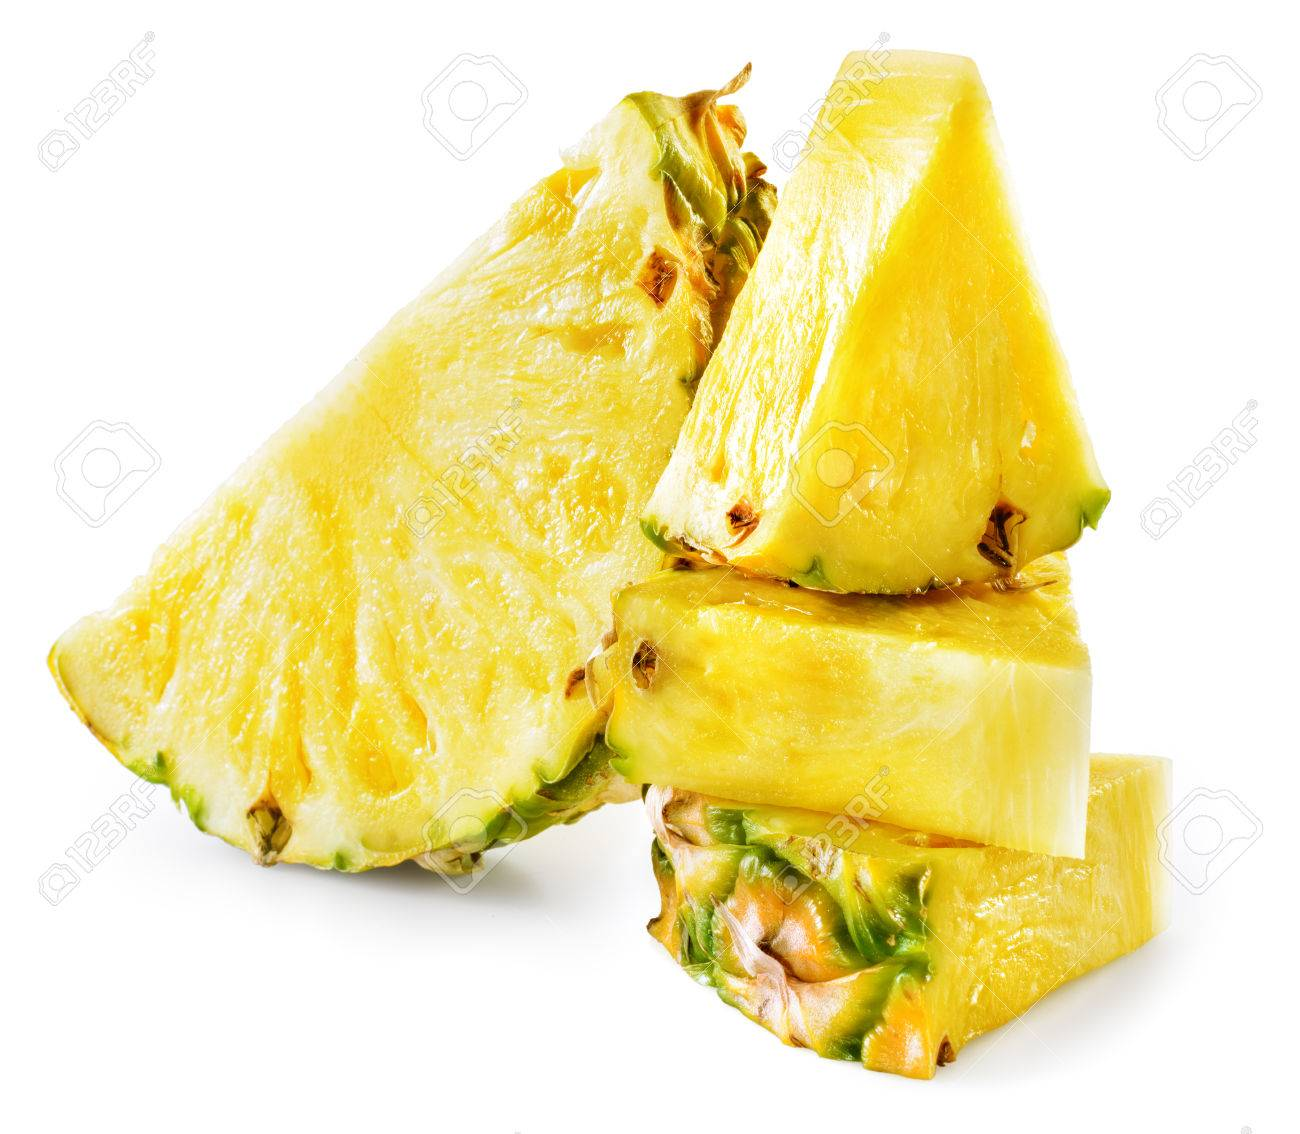 Pineapple slices isolated on white background. - 54475252